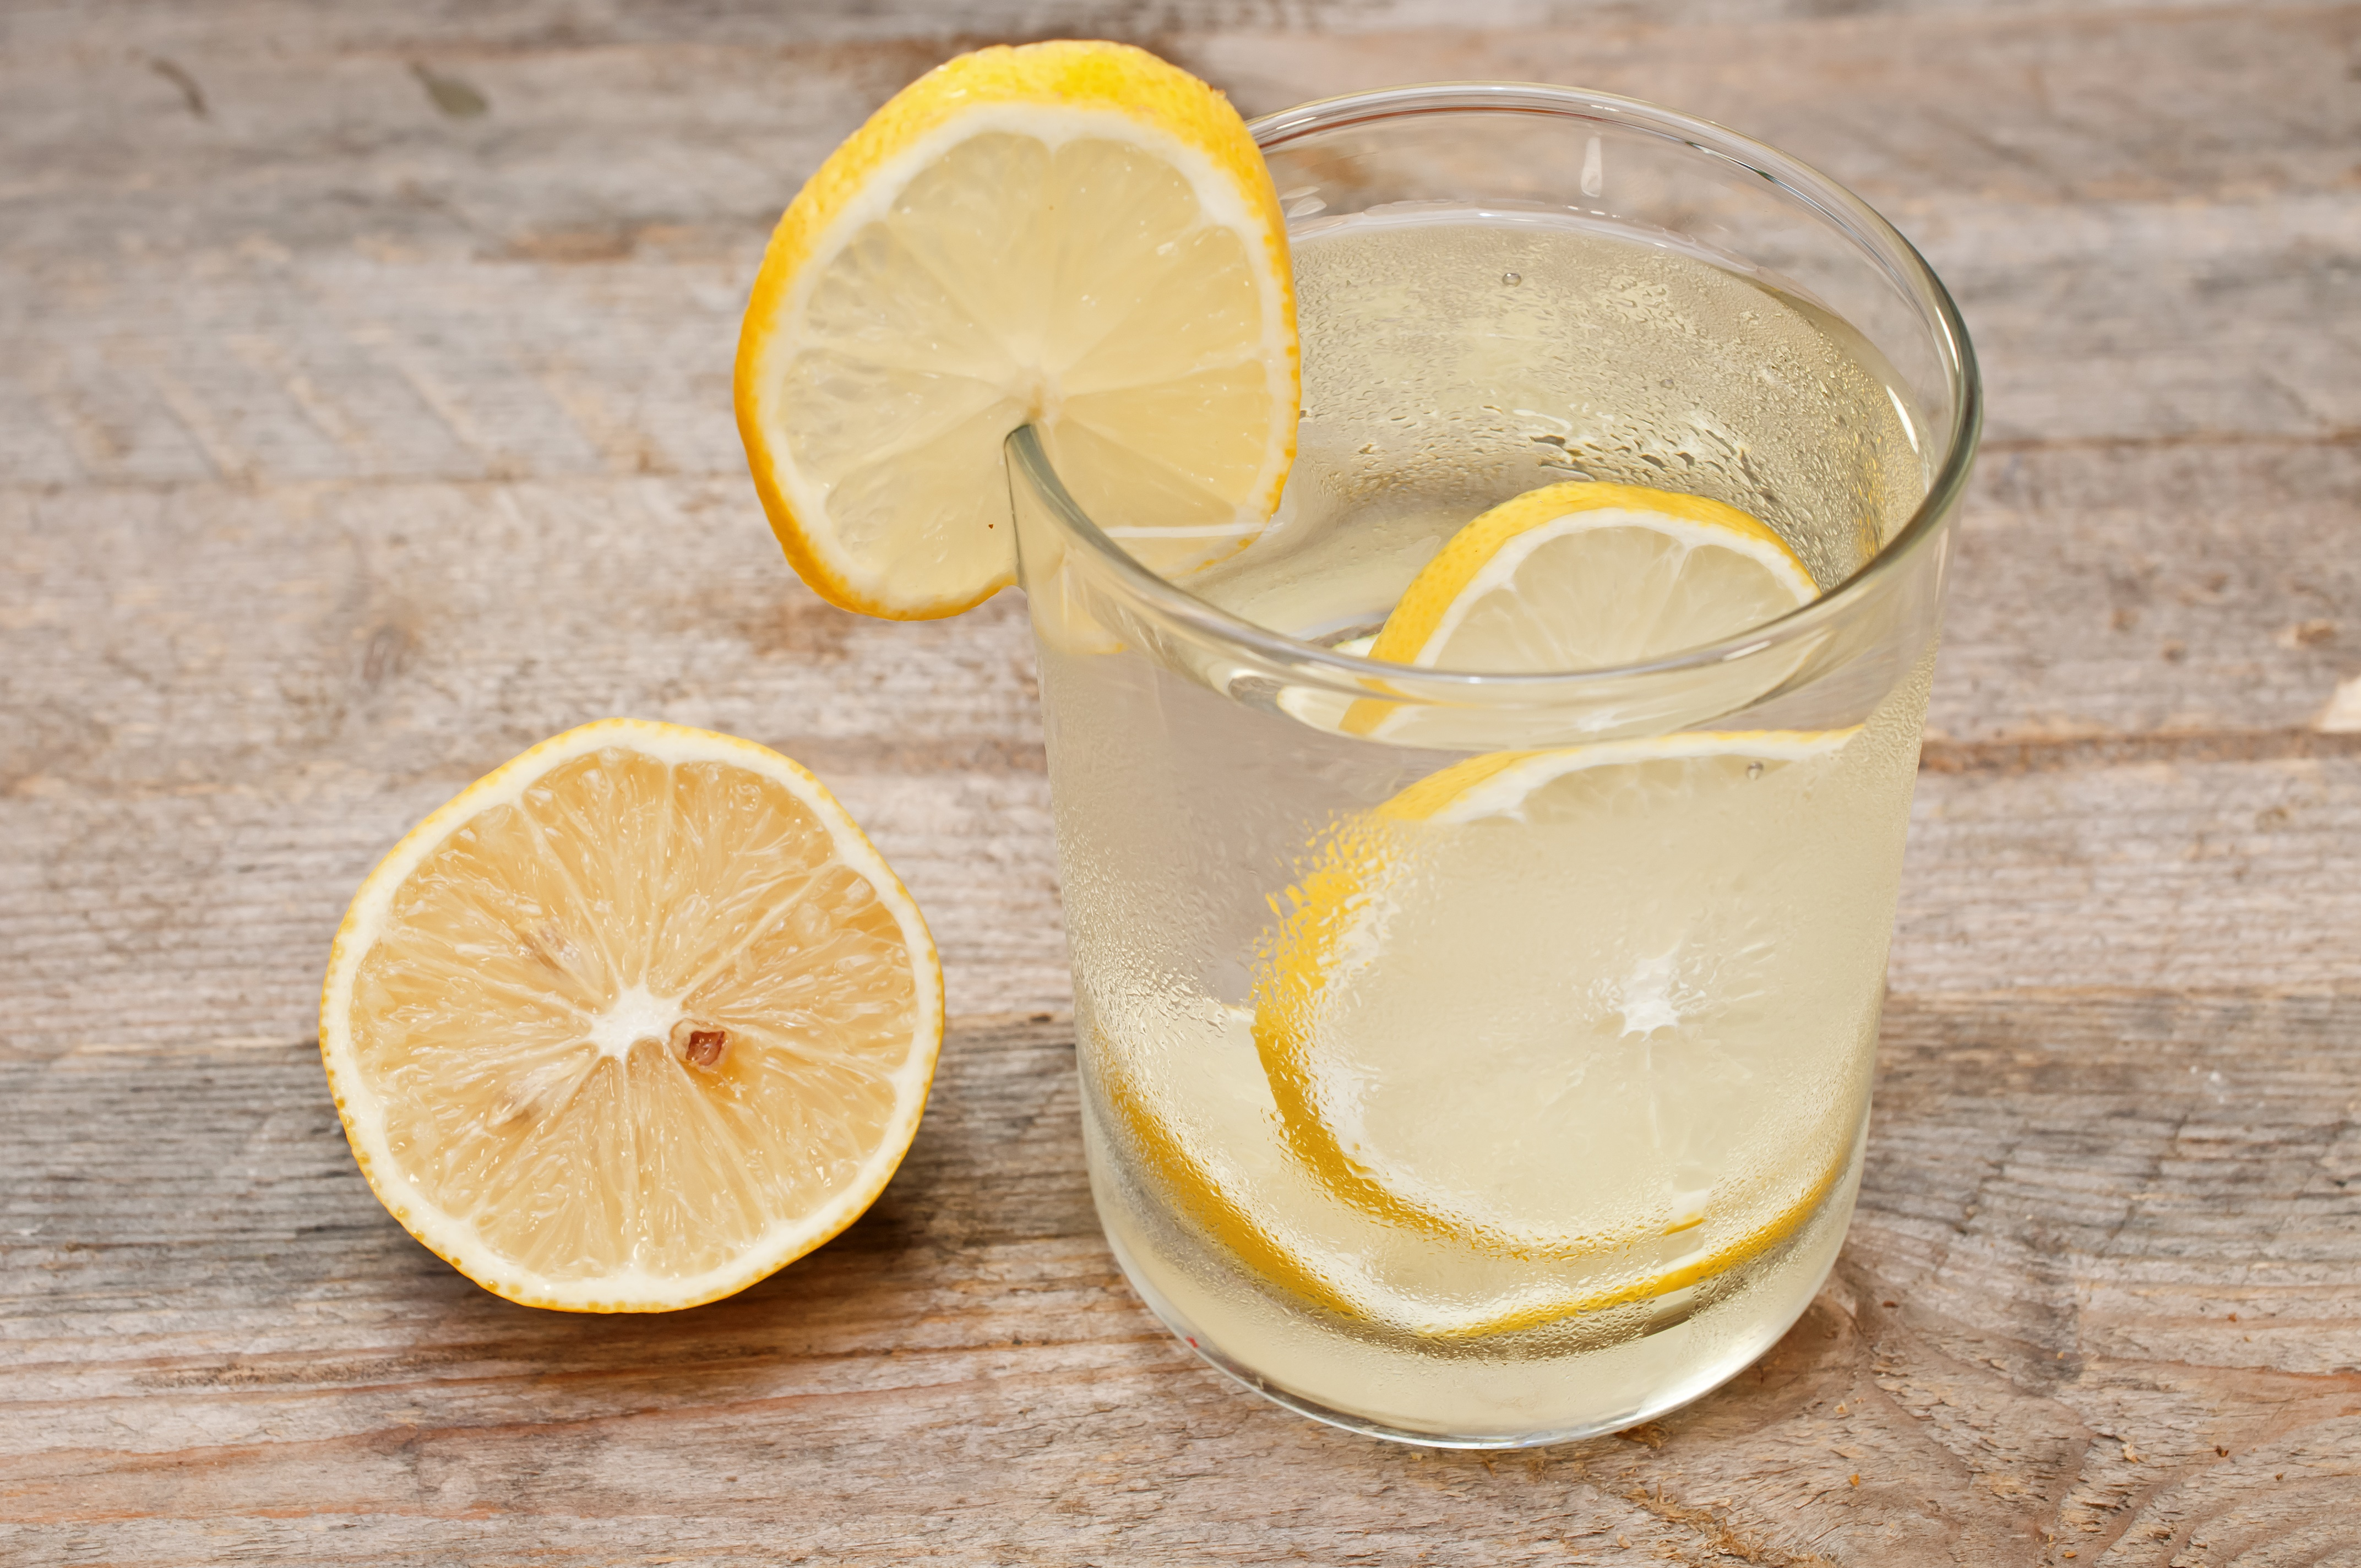 glass of water with lemon on the wooden table